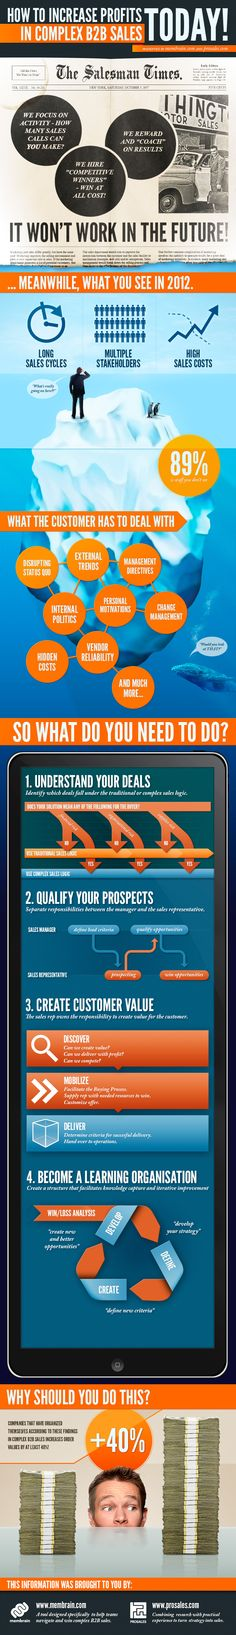 Infographic produced by Membrain and Prosales that illustrates how sales organisations should organize, prospect, qualify and pursue complex opportunities to increase their deal sizes by over Inbound Marketing, Content Marketing, Digital Marketing, Increase Sales, Sales And Marketing, Online Sales, How To Become, Infographics, Business